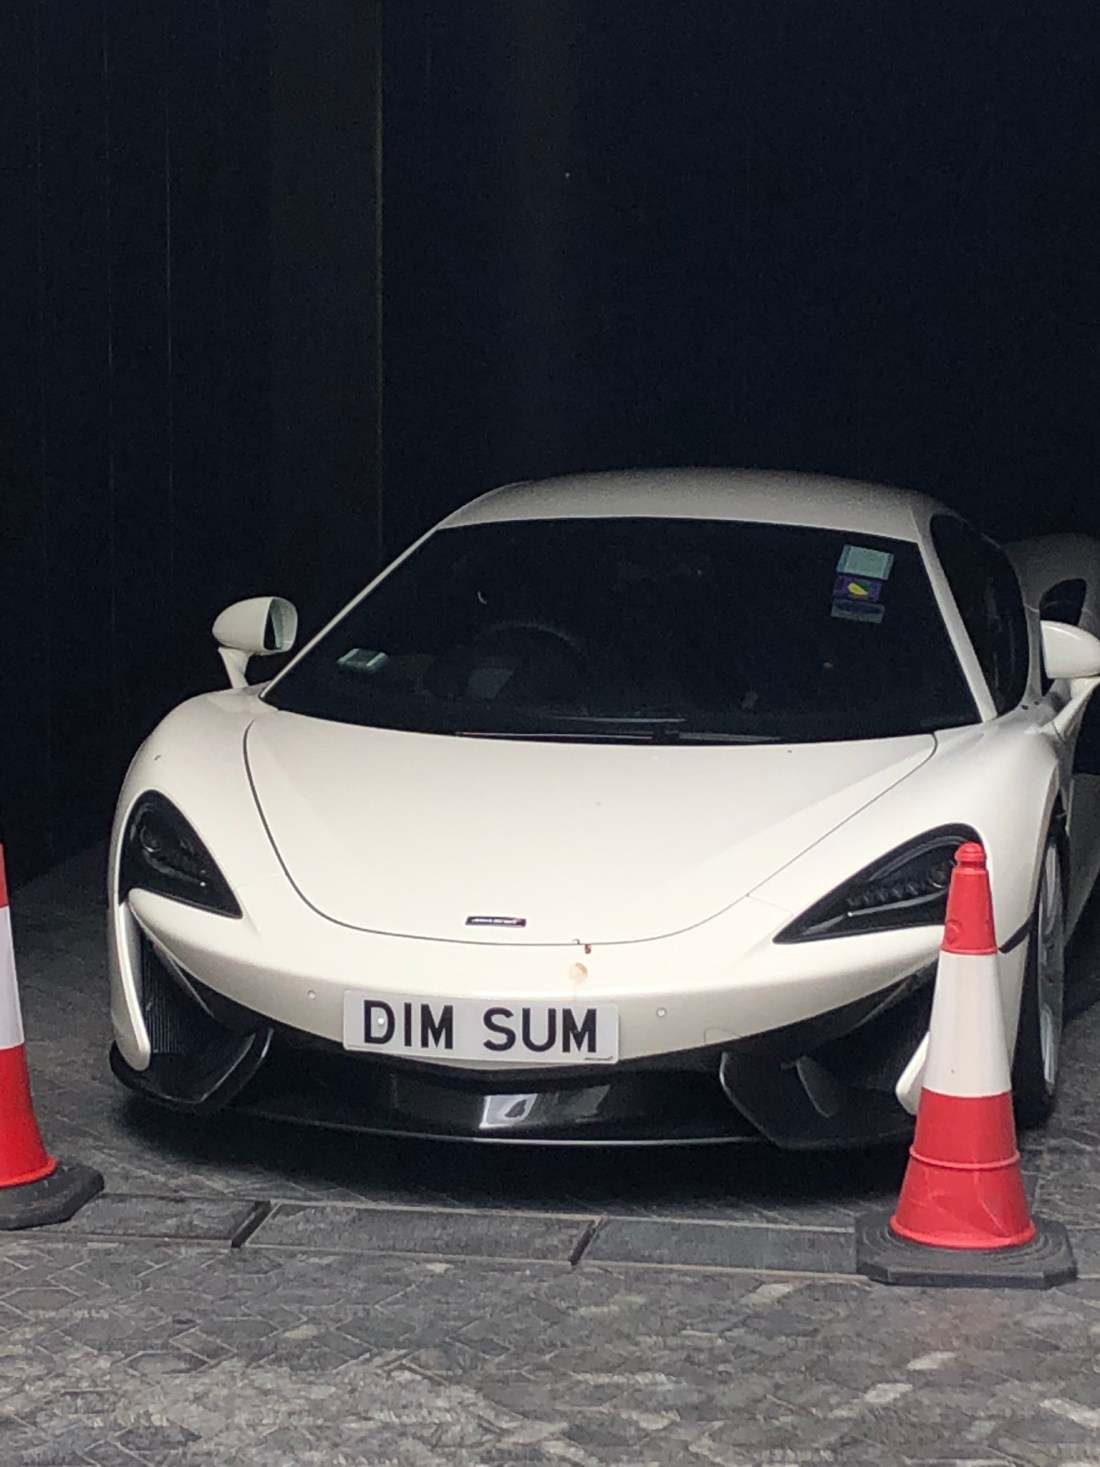 Dim Sum numberplate in Hong Kong